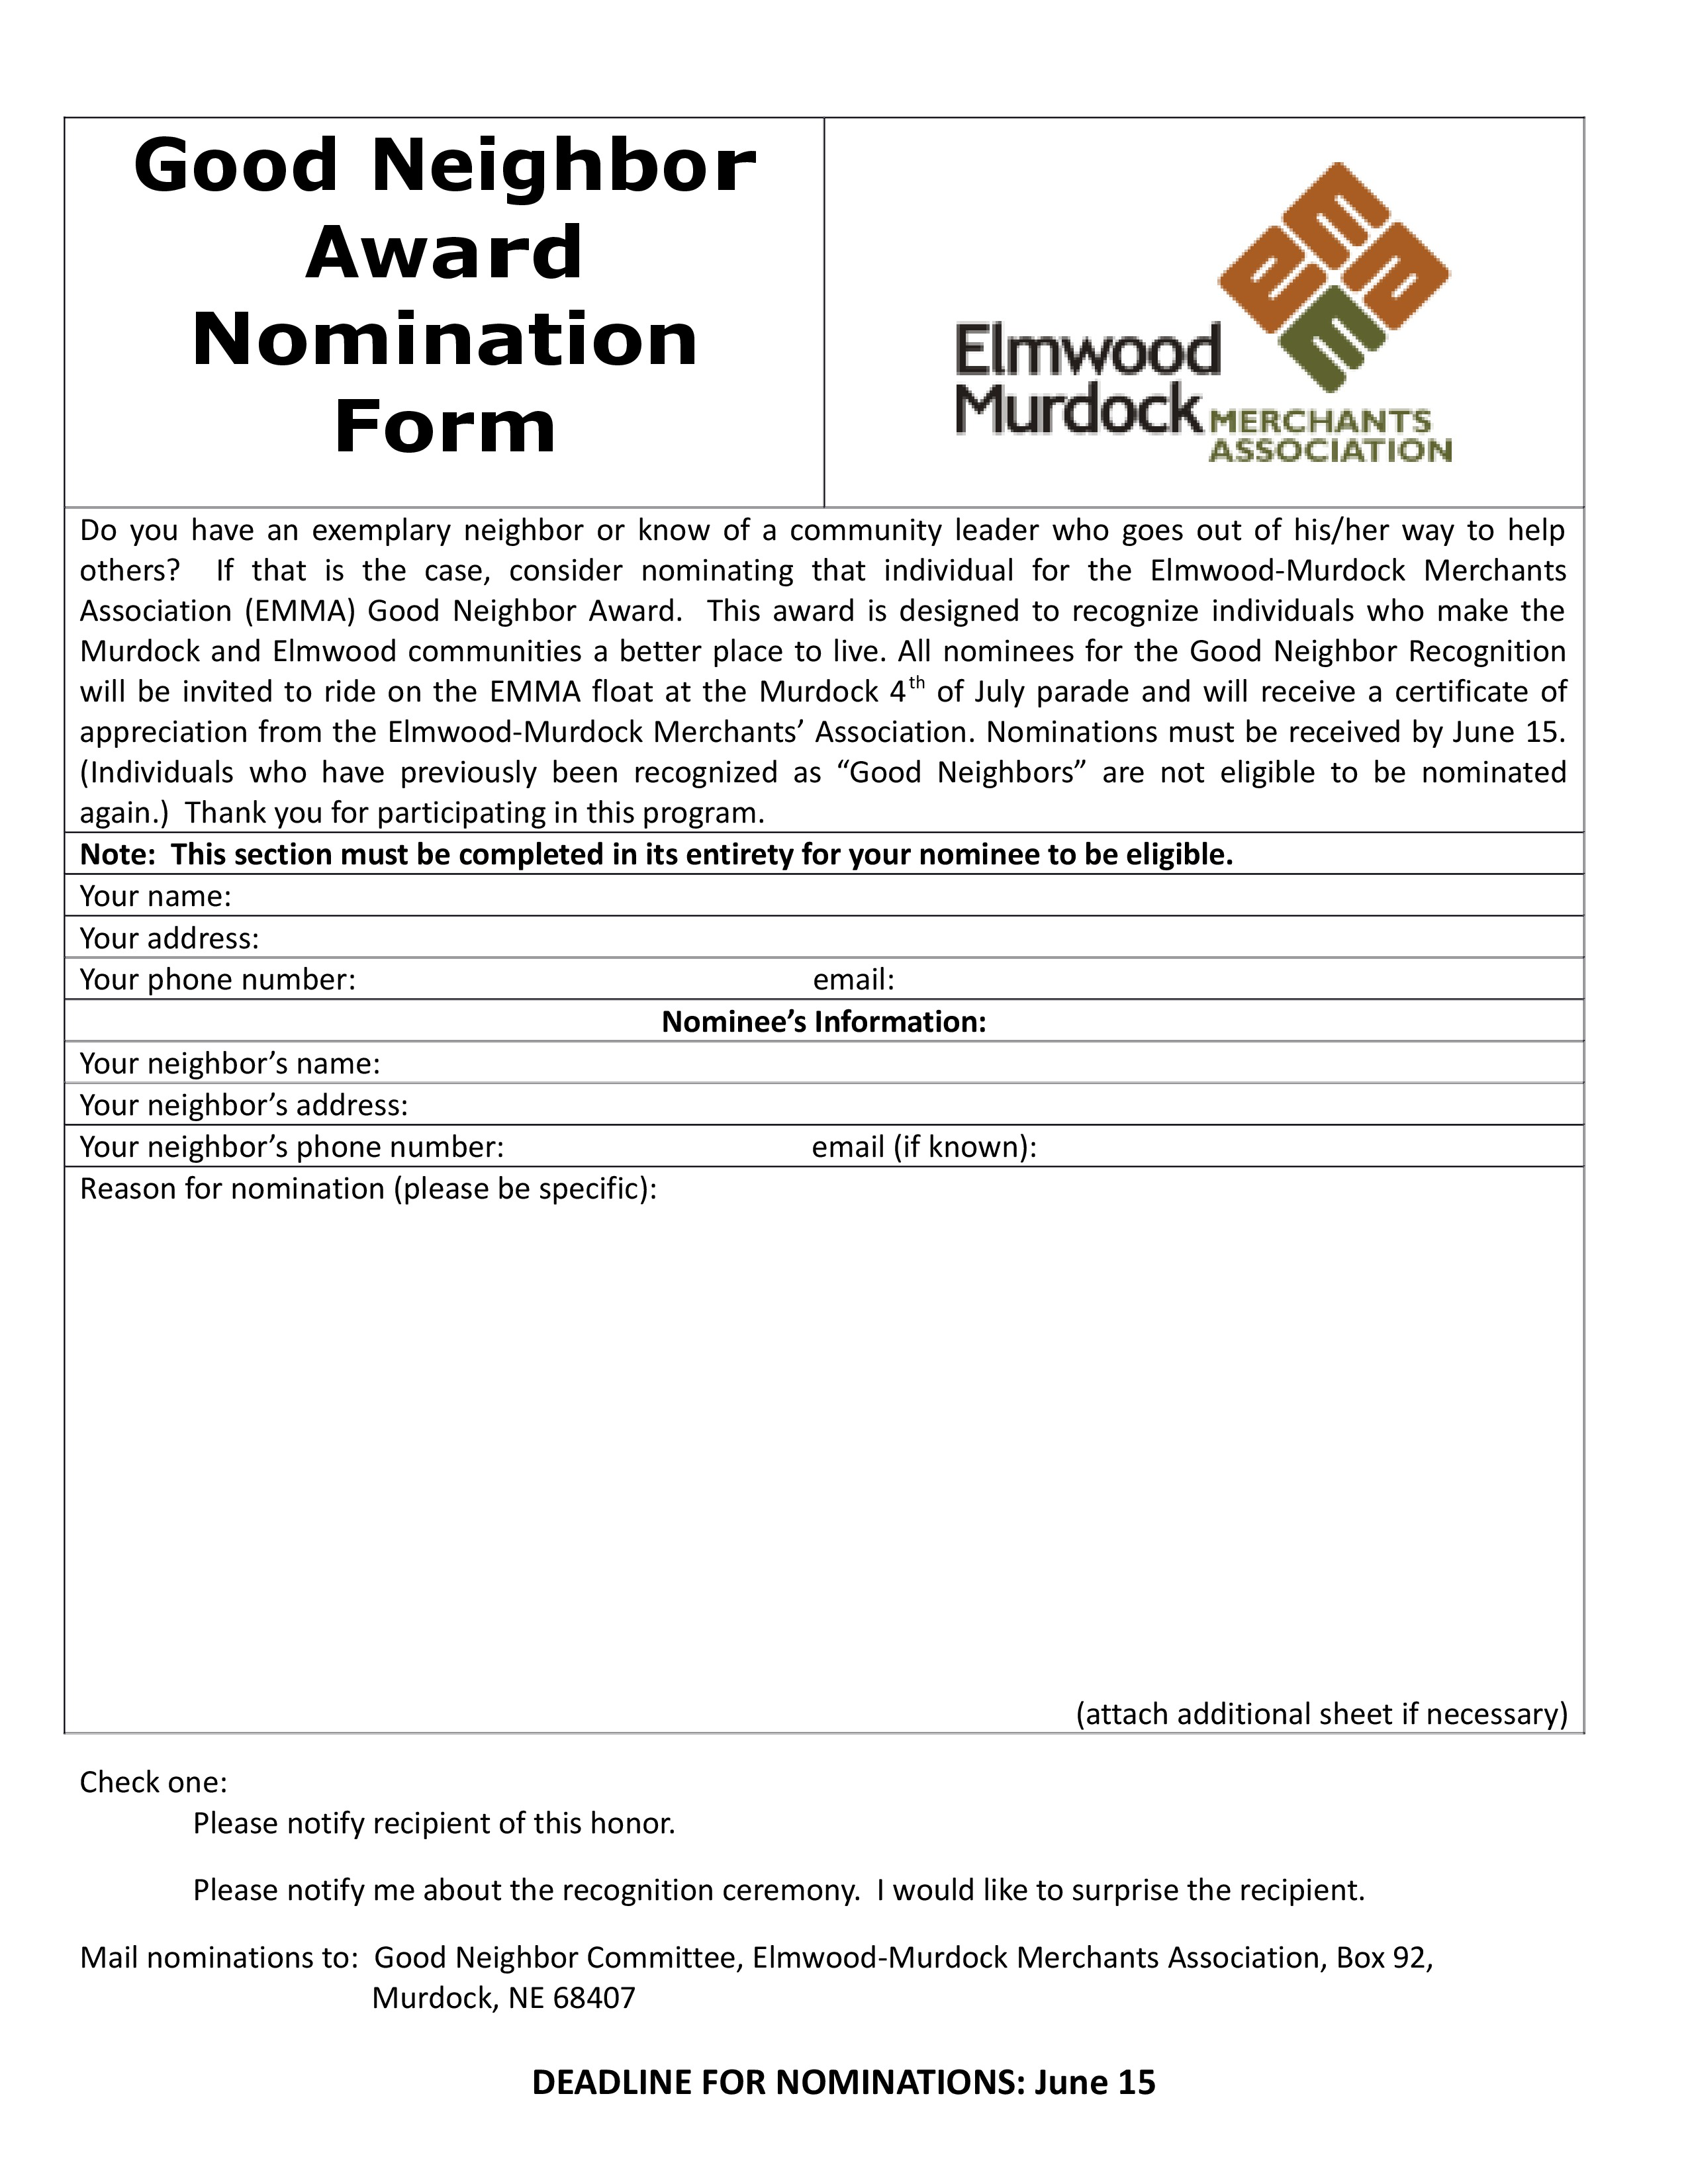 3 Good Neighbor Award Nomination Form